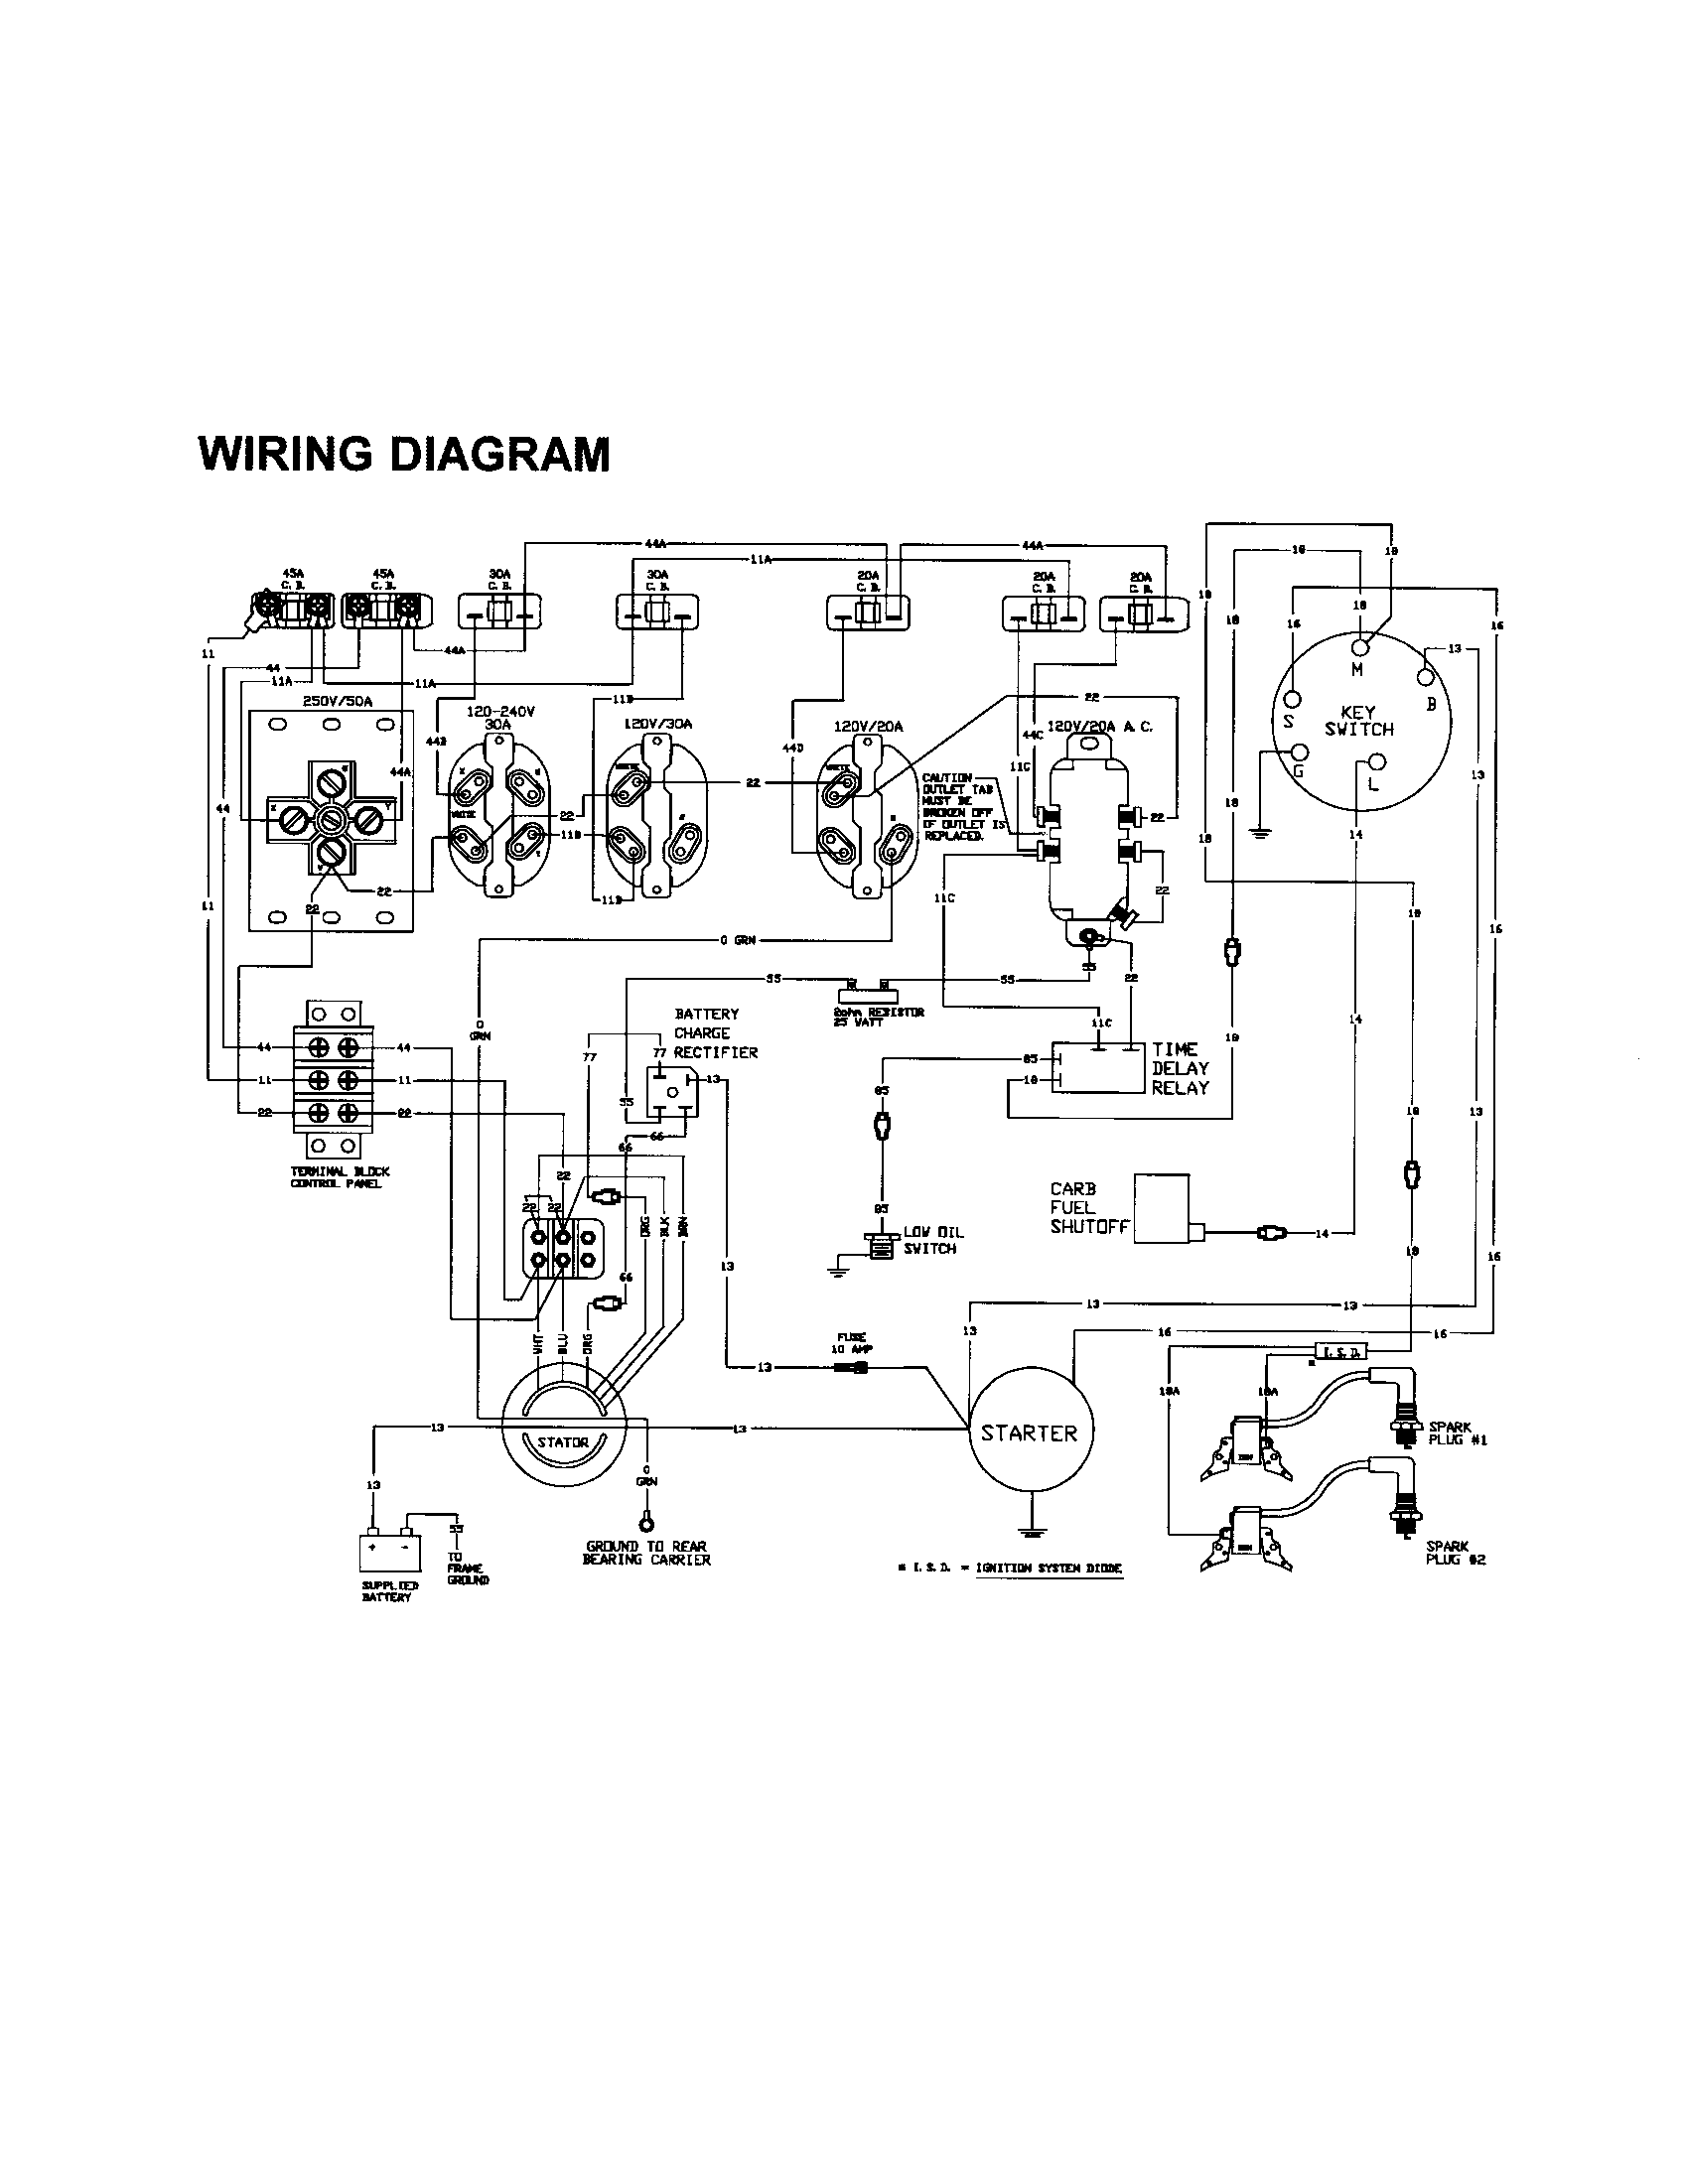 Wiring diagram for generac home generator the wiring diagram wiring diagram